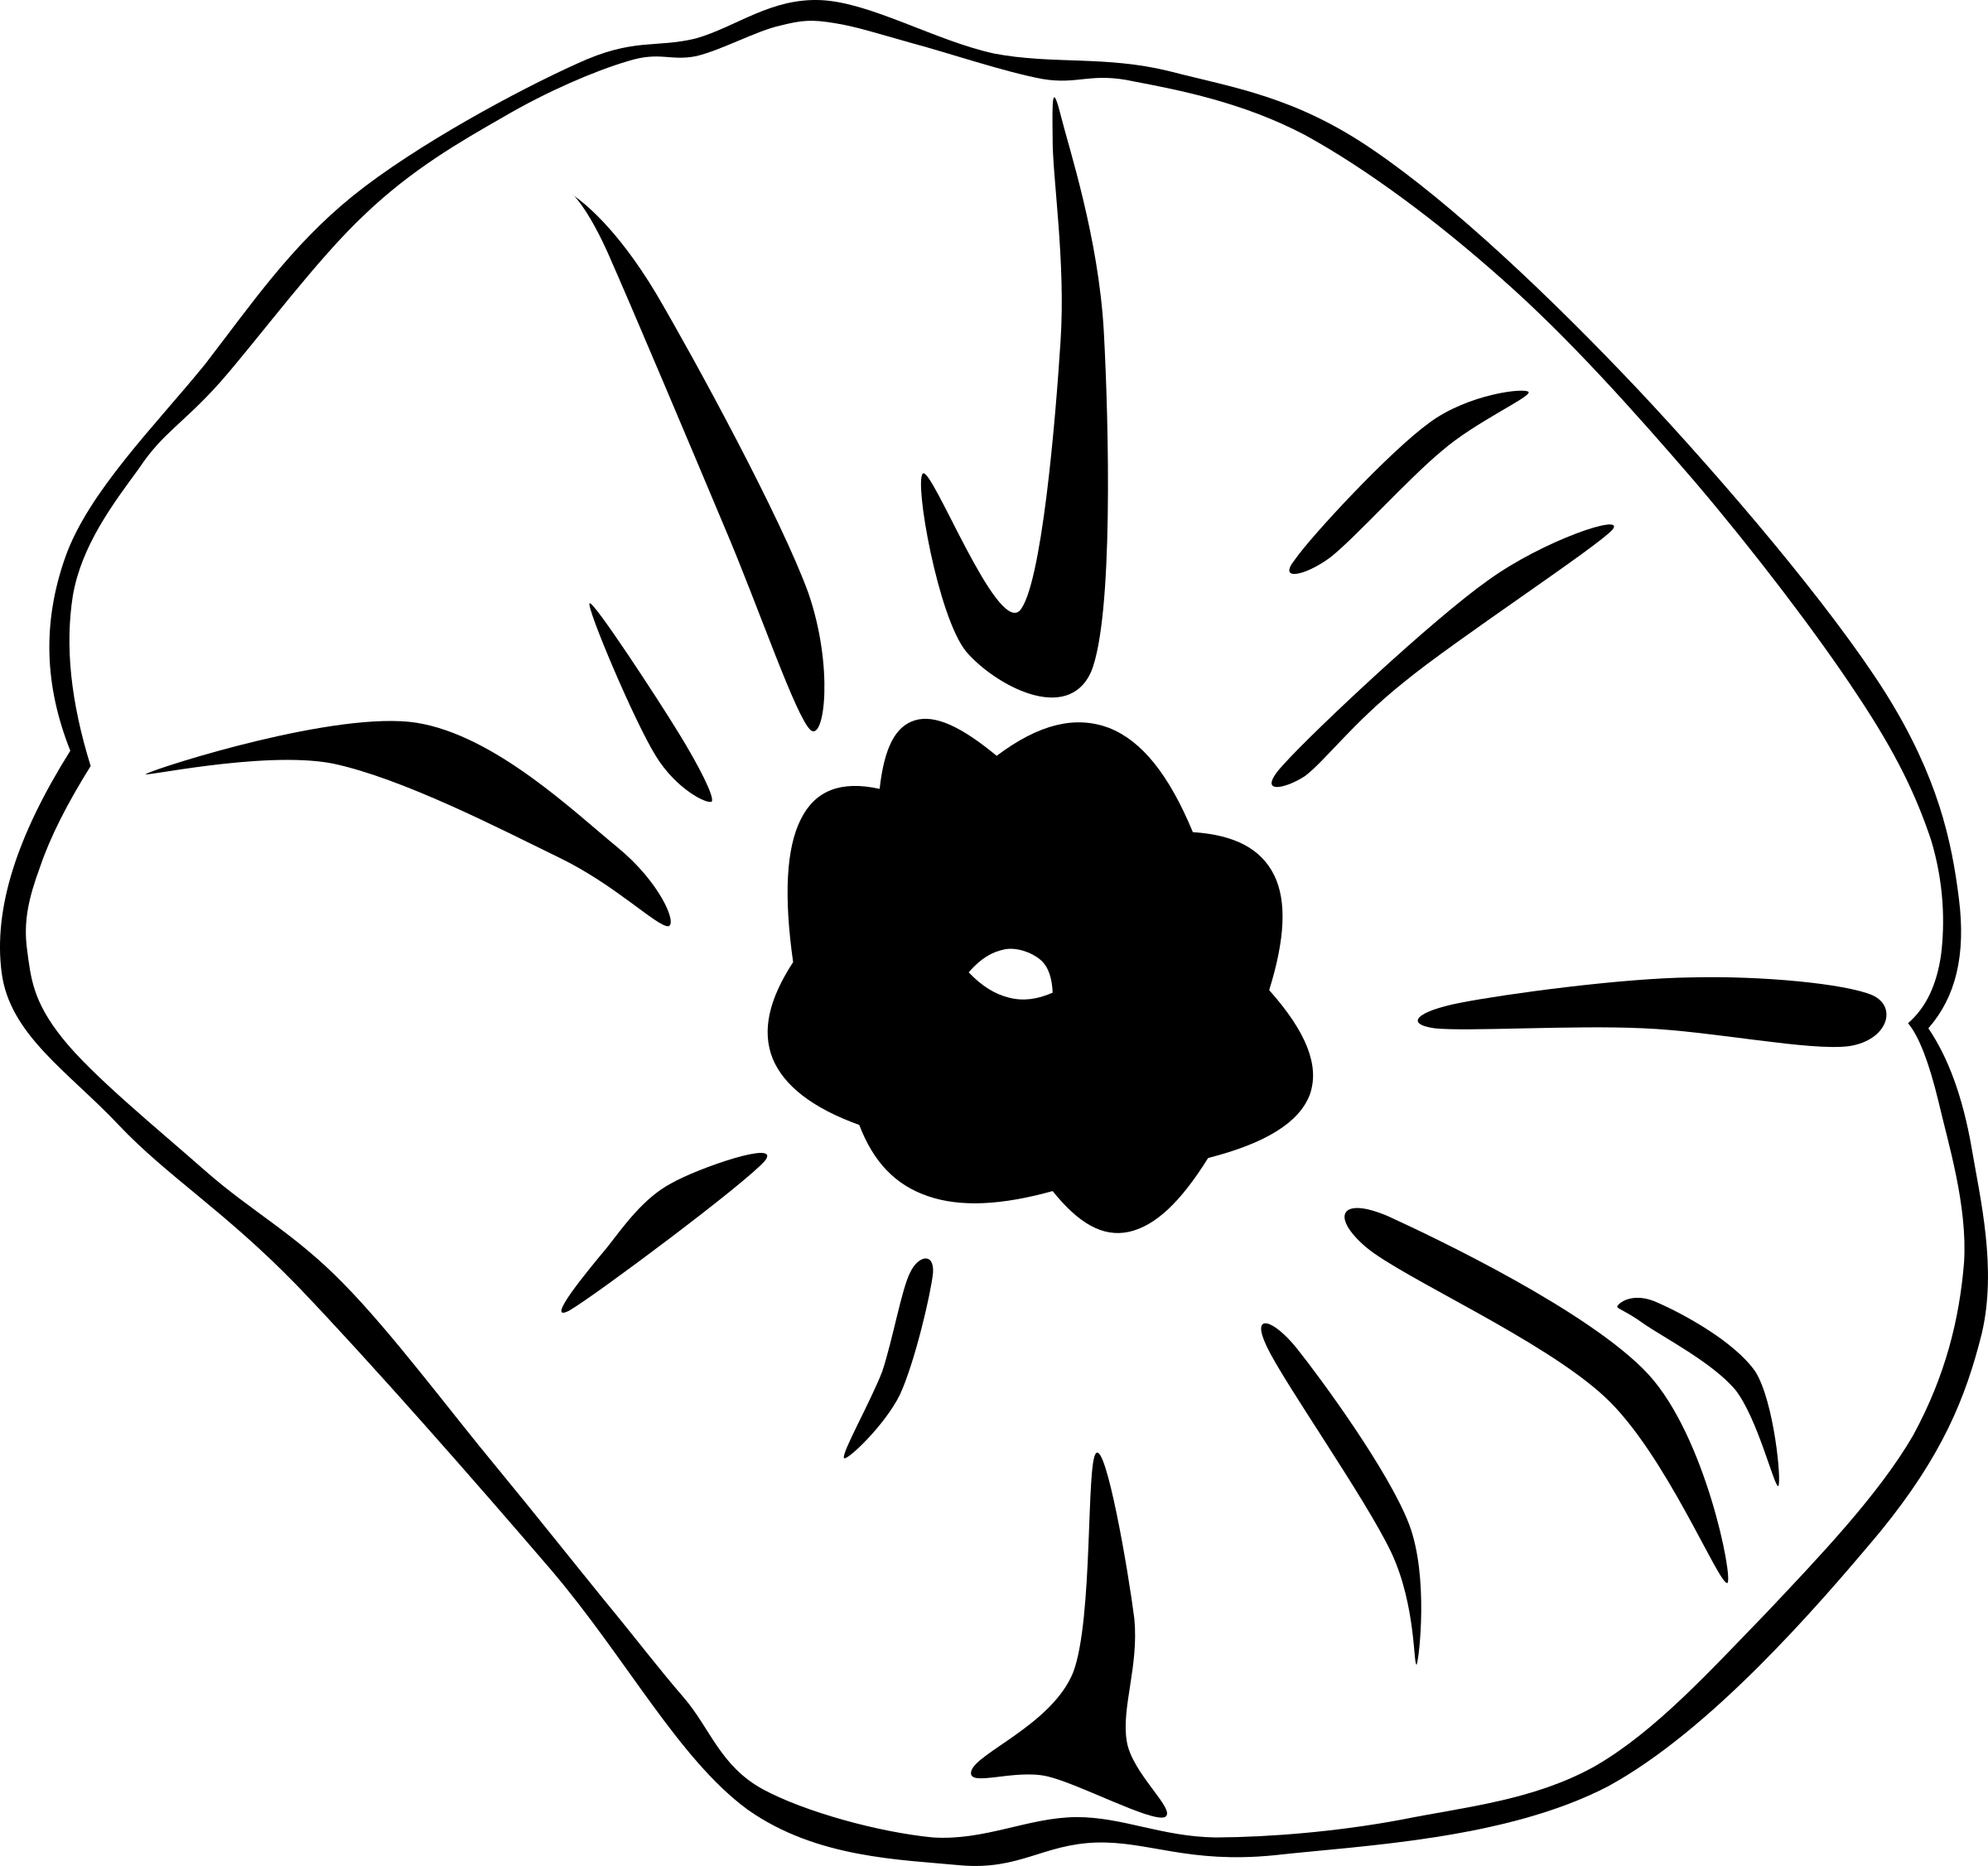 Poppy (Remembrance Day) by Gerald_G